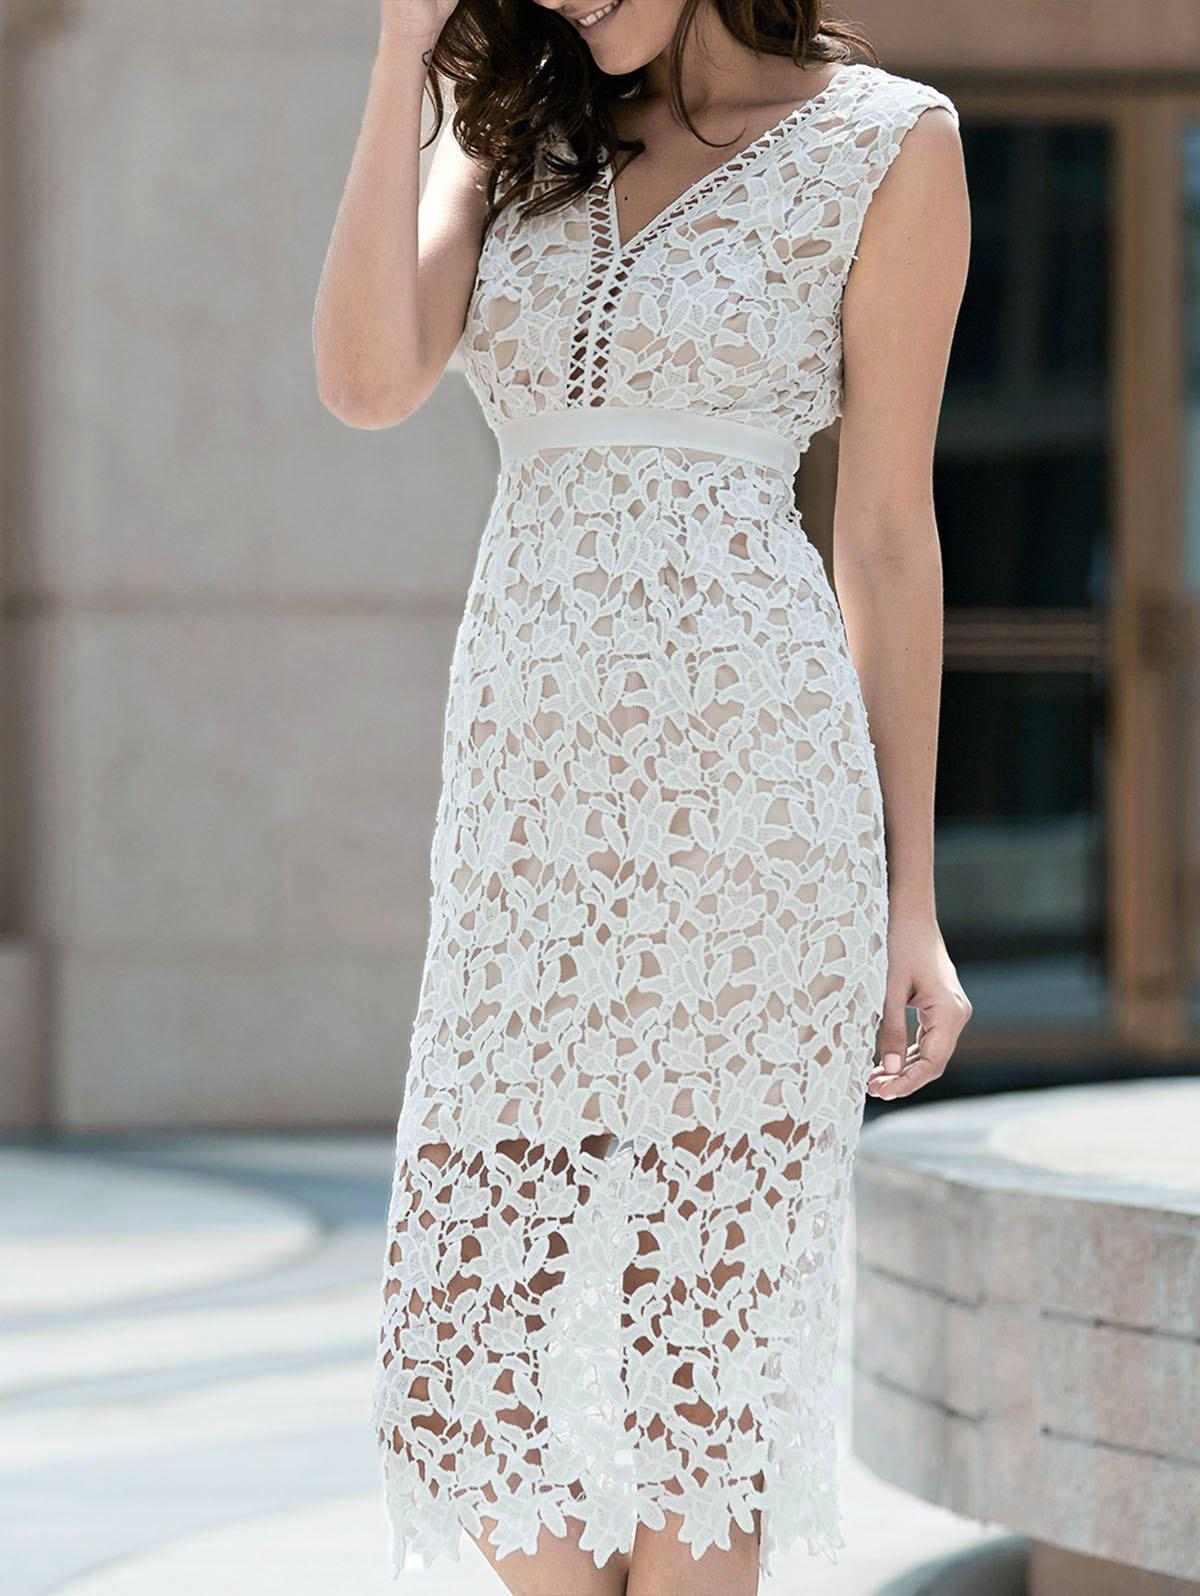 Alluring Plunging Neck Sleeveless Hollow Out Bodycon Women's Slit Dress - WHITE XL